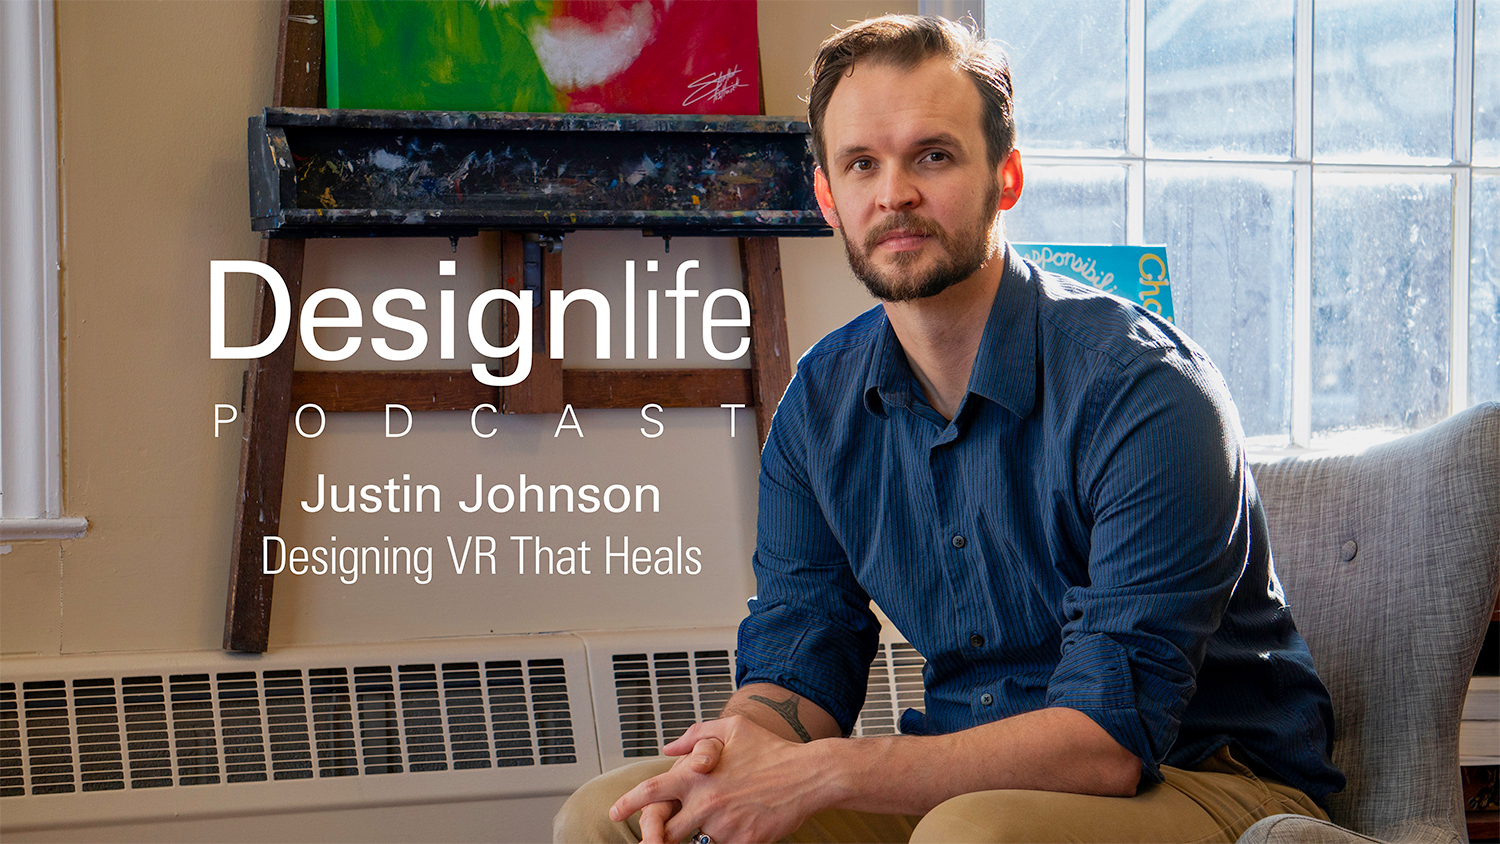 Justin-Johnson-Designlife-Podcast-Portrait